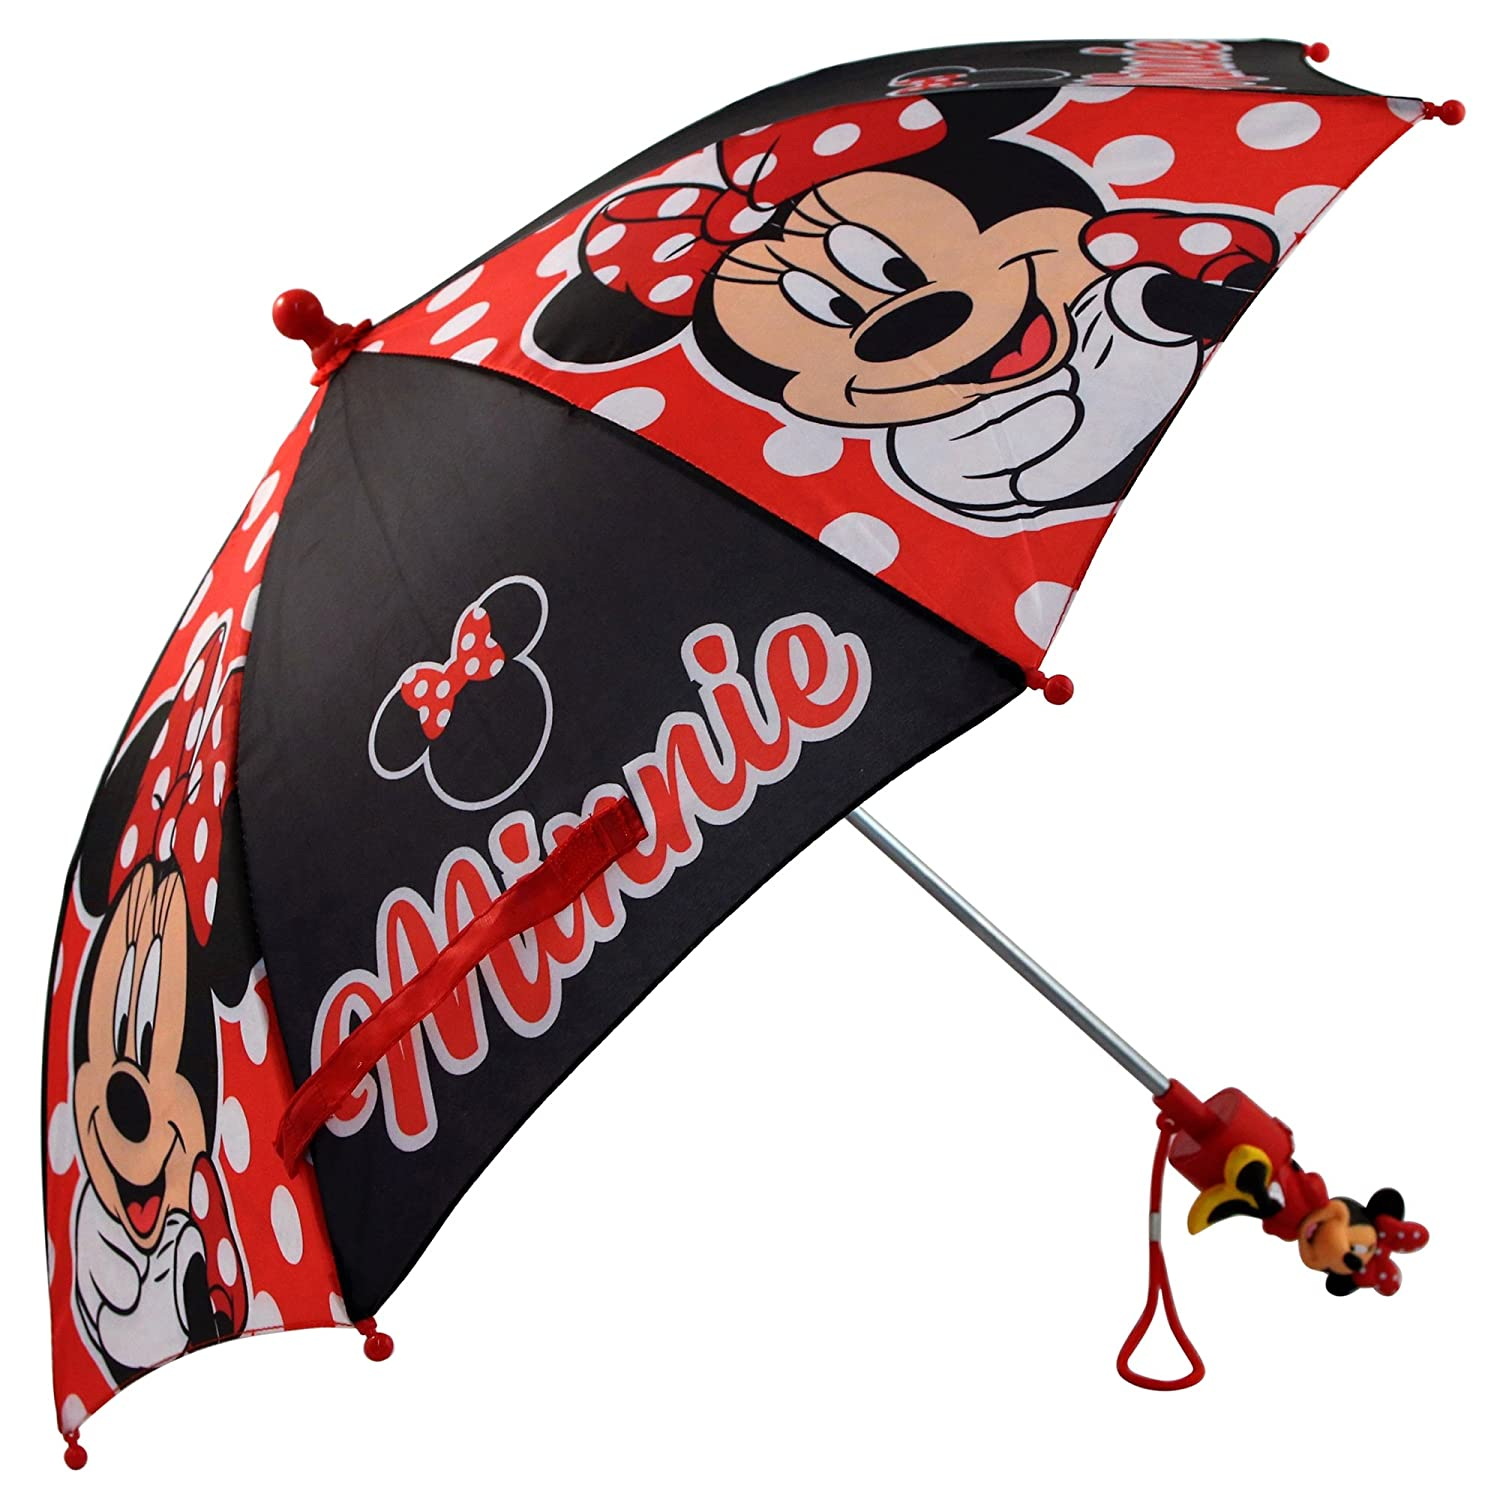 0e3ad990f3a0a CTM Kids' Solid Color Stick Umbrella, Black WI-W101CHSOL-BLK. $9.20. Disney  Girls' Little Minnie Mouse Polka Dot Character Rainwear Umbrella, red/Black,